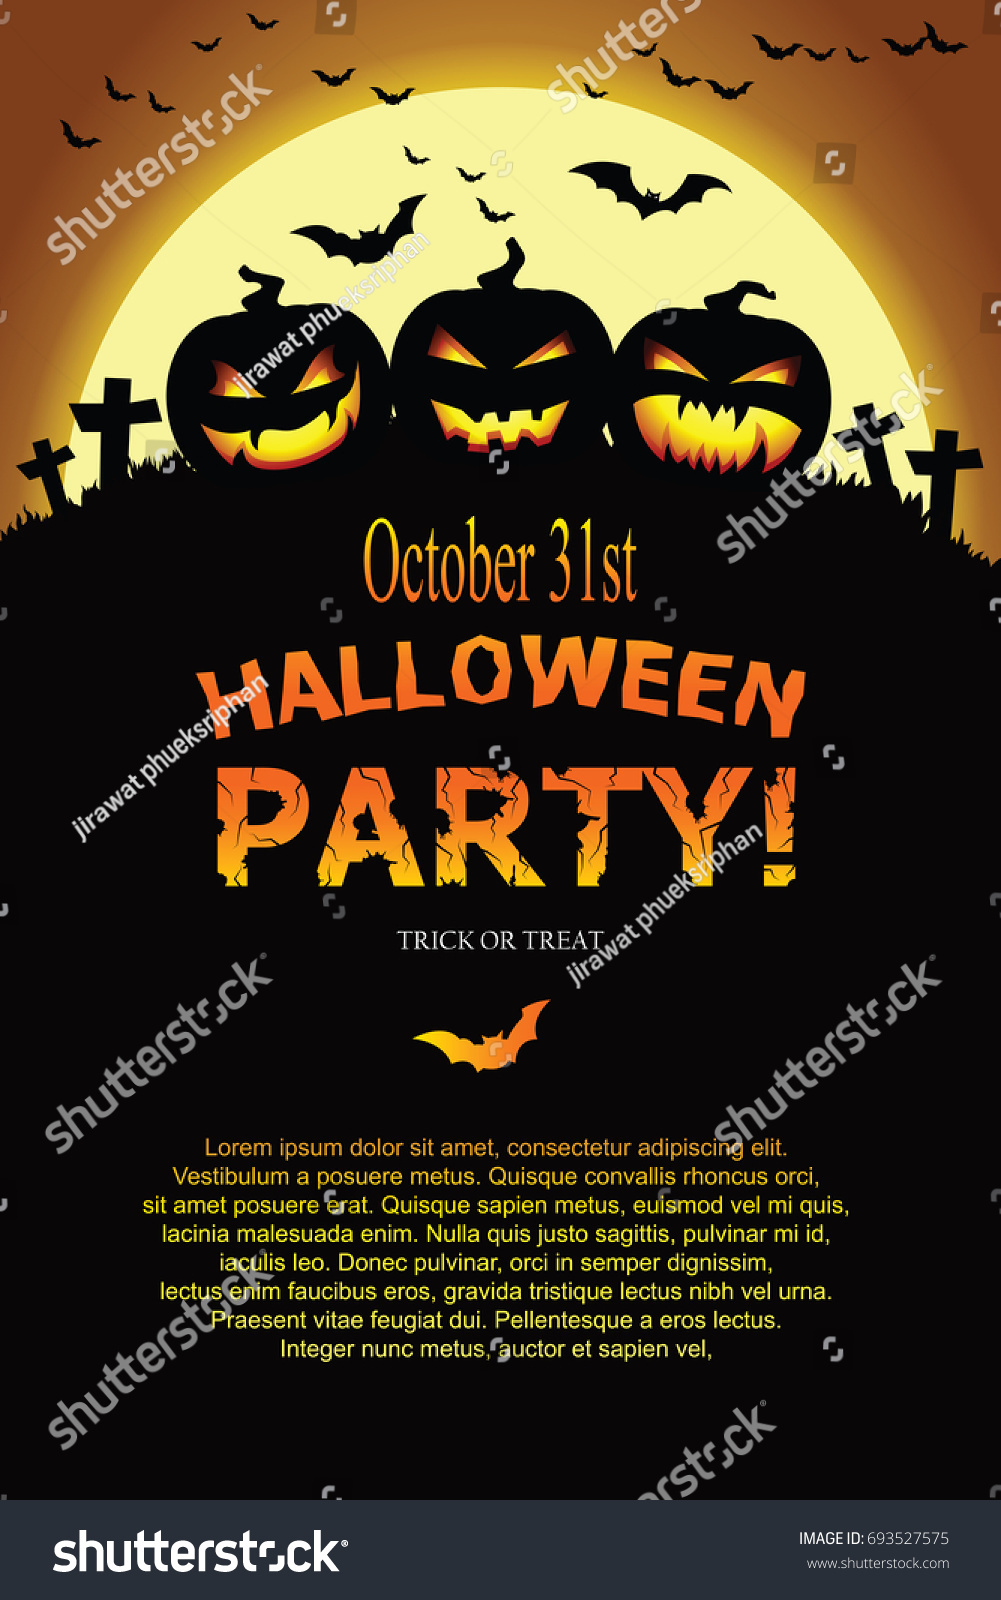 Halloween party style poster collection ez canvas stopboris Gallery